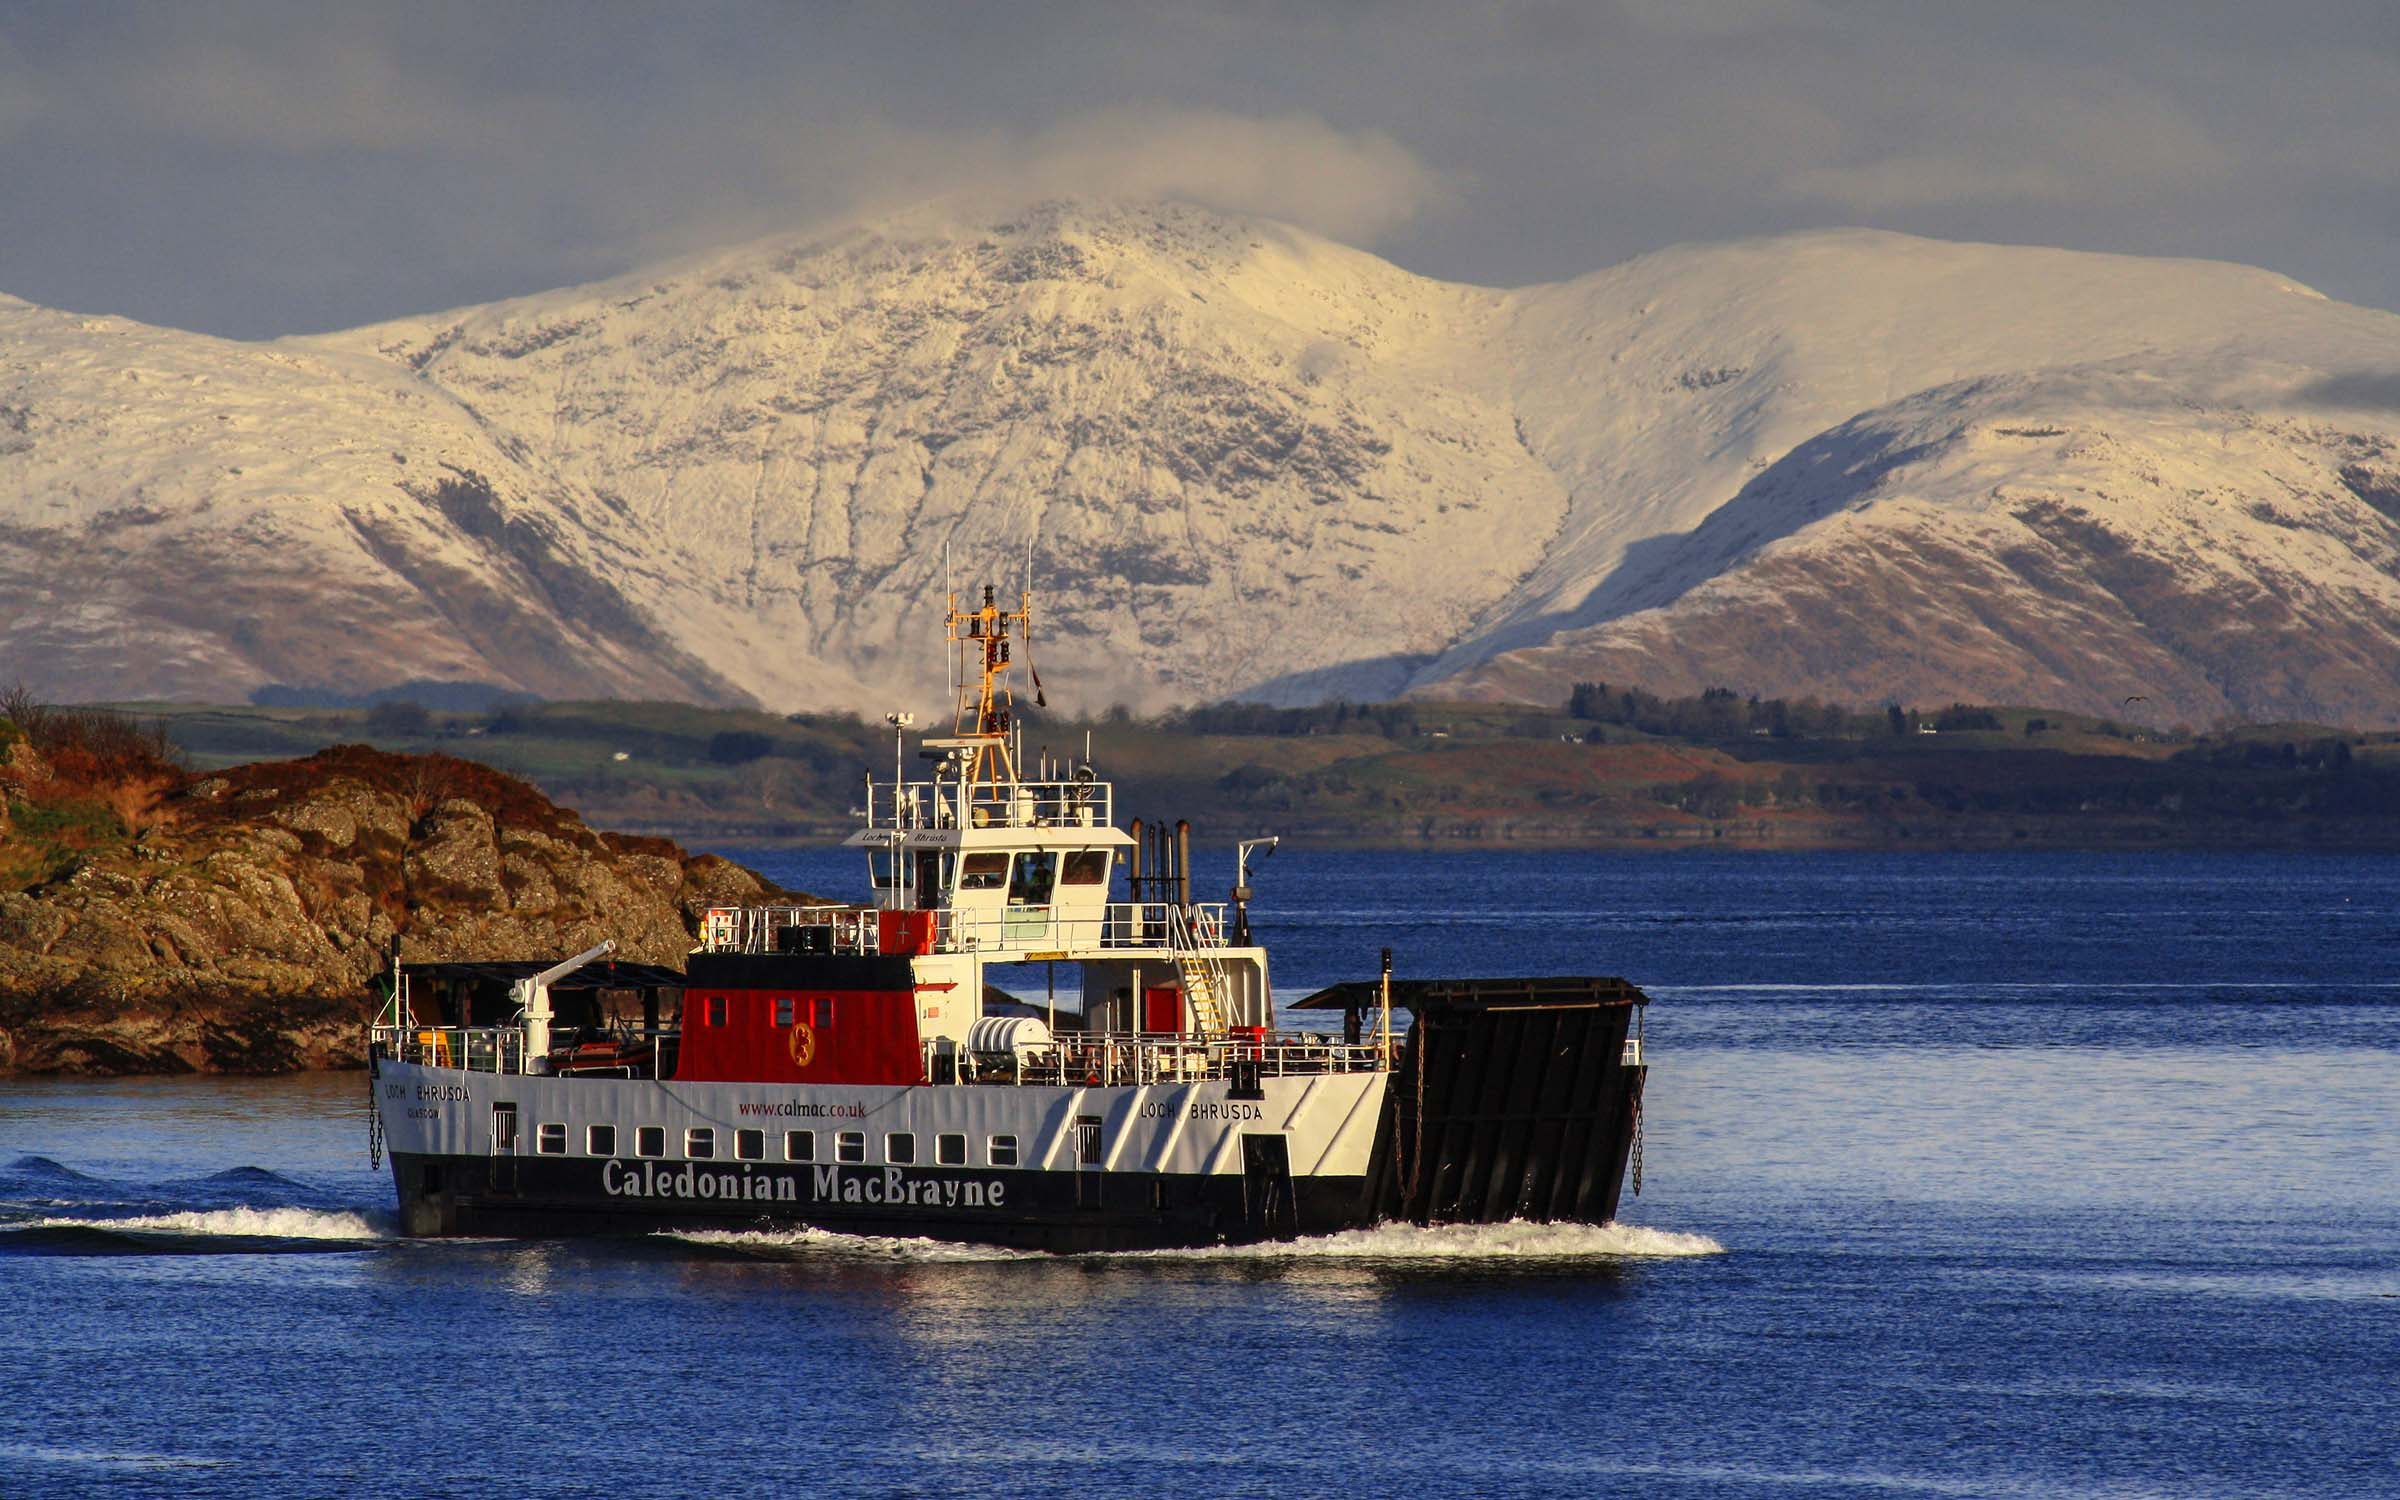 Loch Bhrusda on Lismore winter relief (Ships of CalMac)